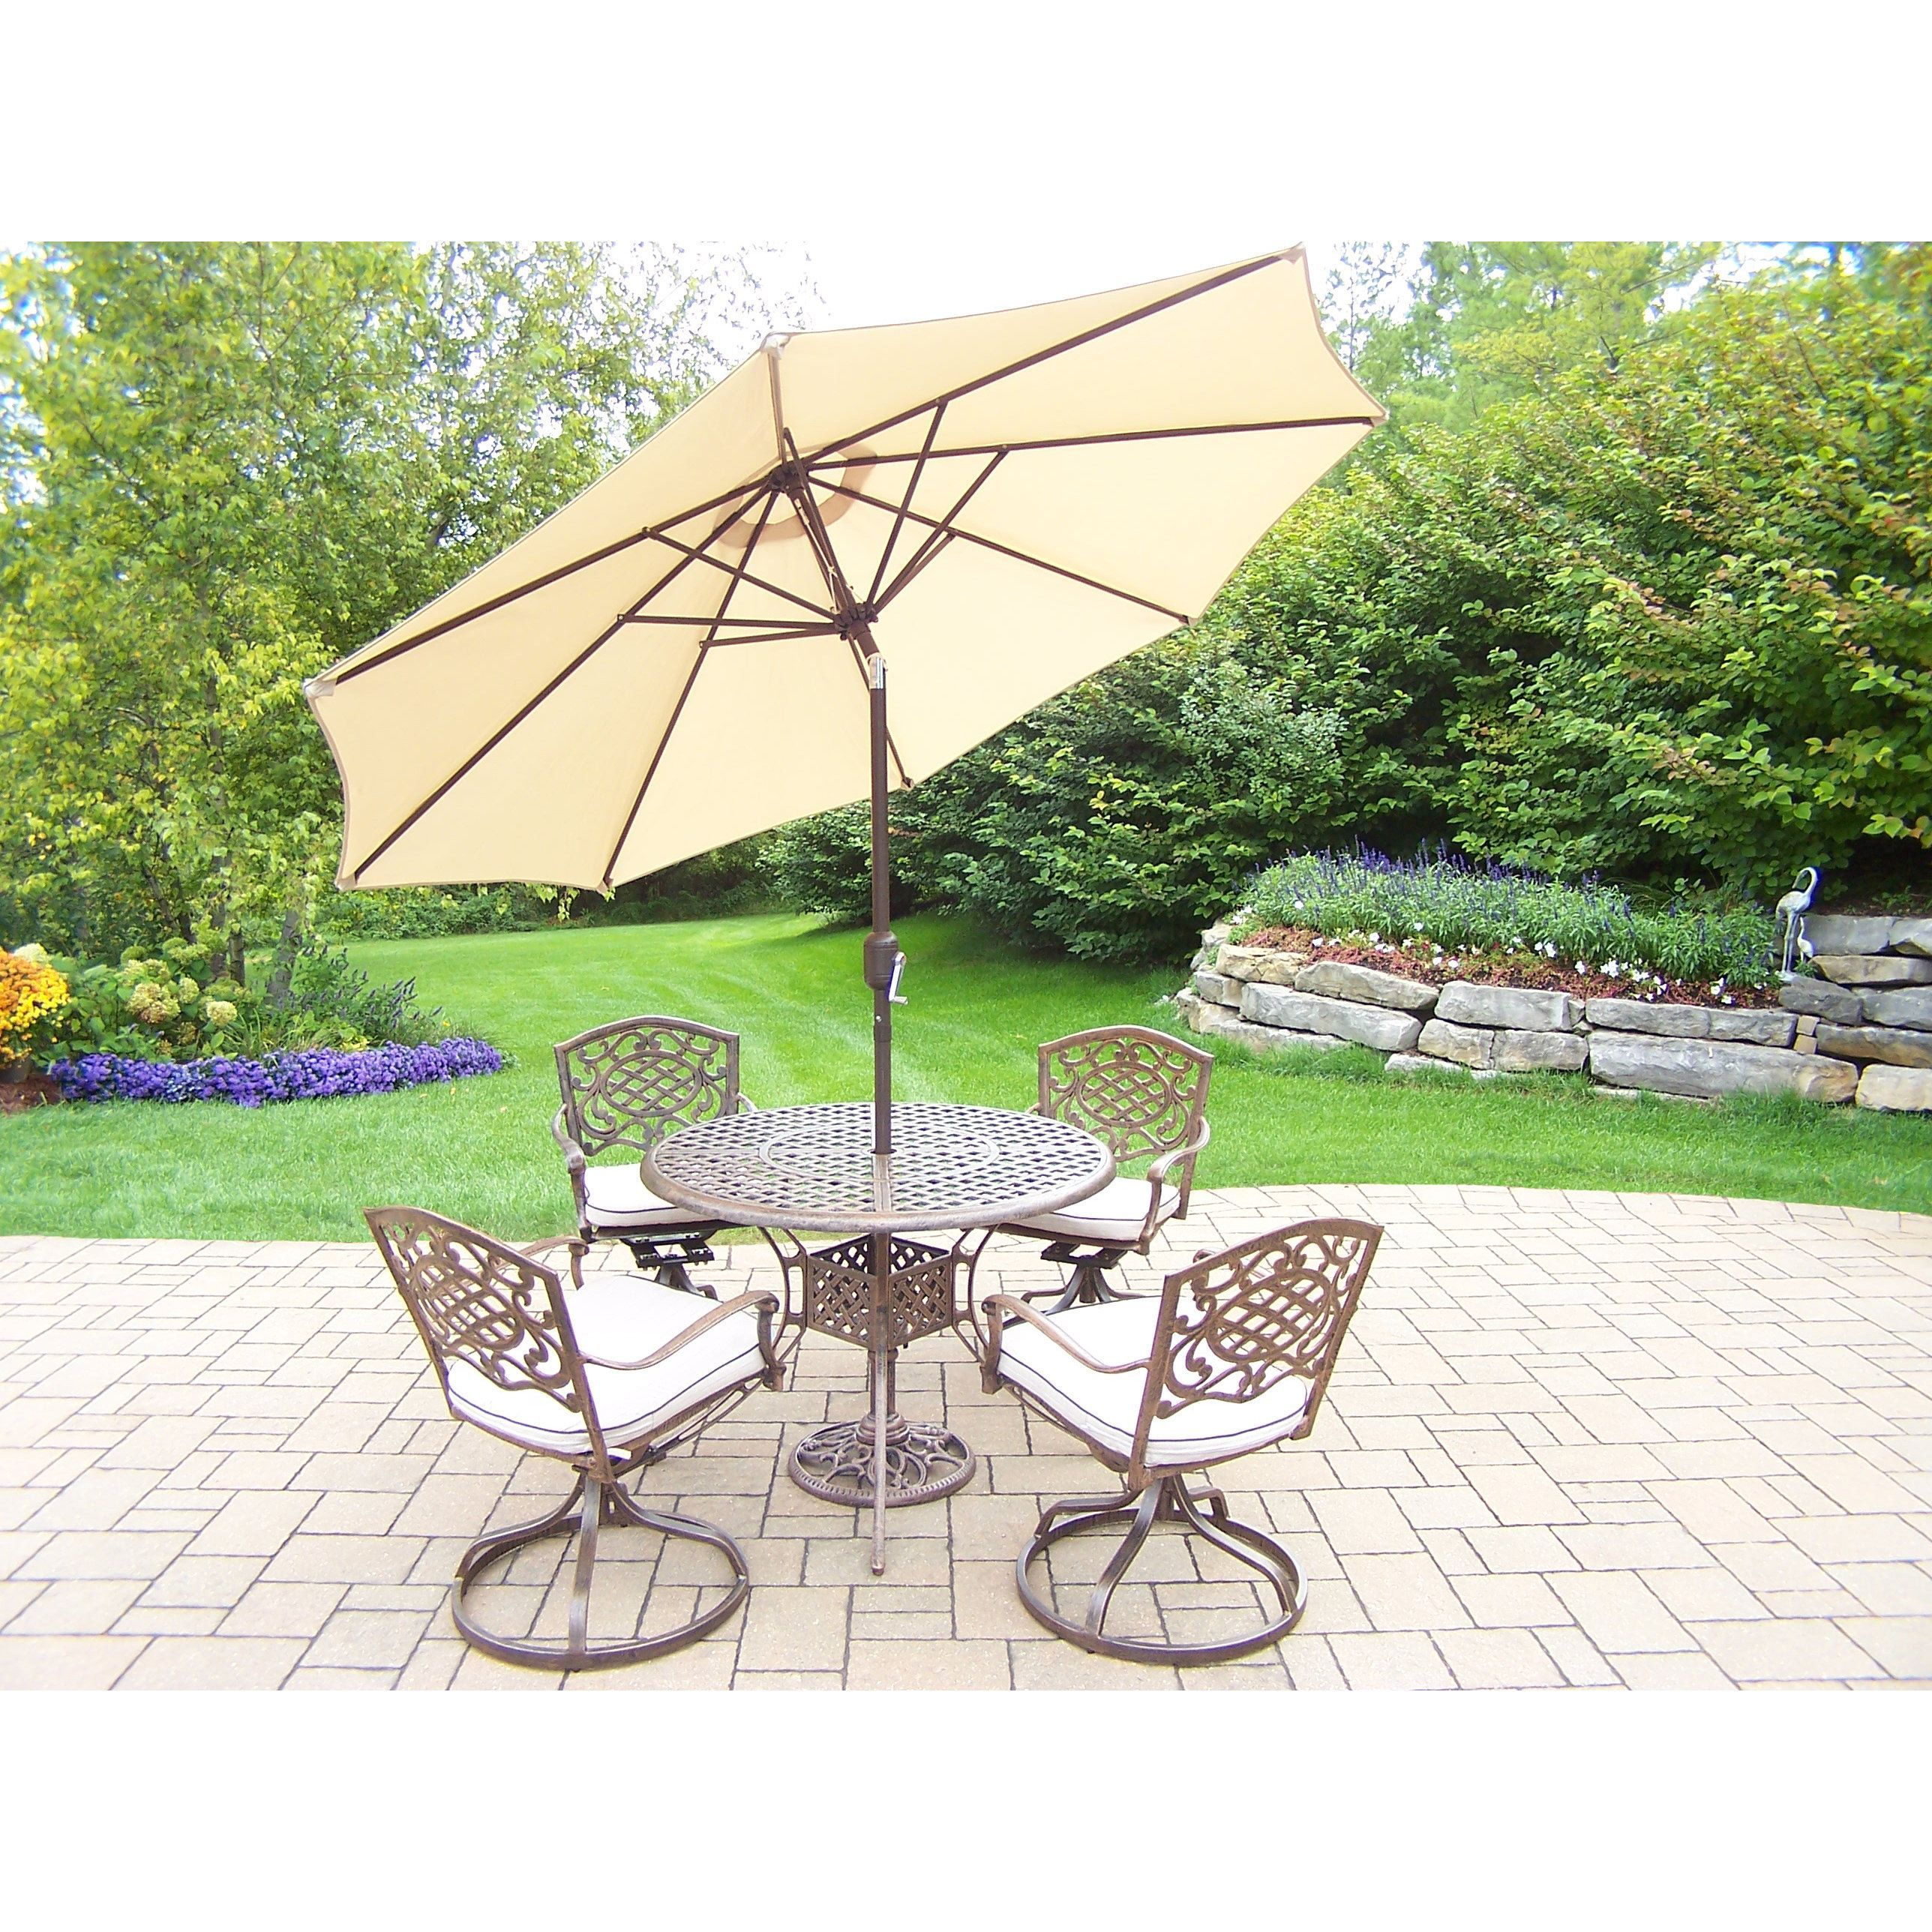 Oakland Living Corporation Dakota 7-Piece Dining Set with 42-in. Table, 4 Swivel Rockers, Umbrella, and Metal Stand